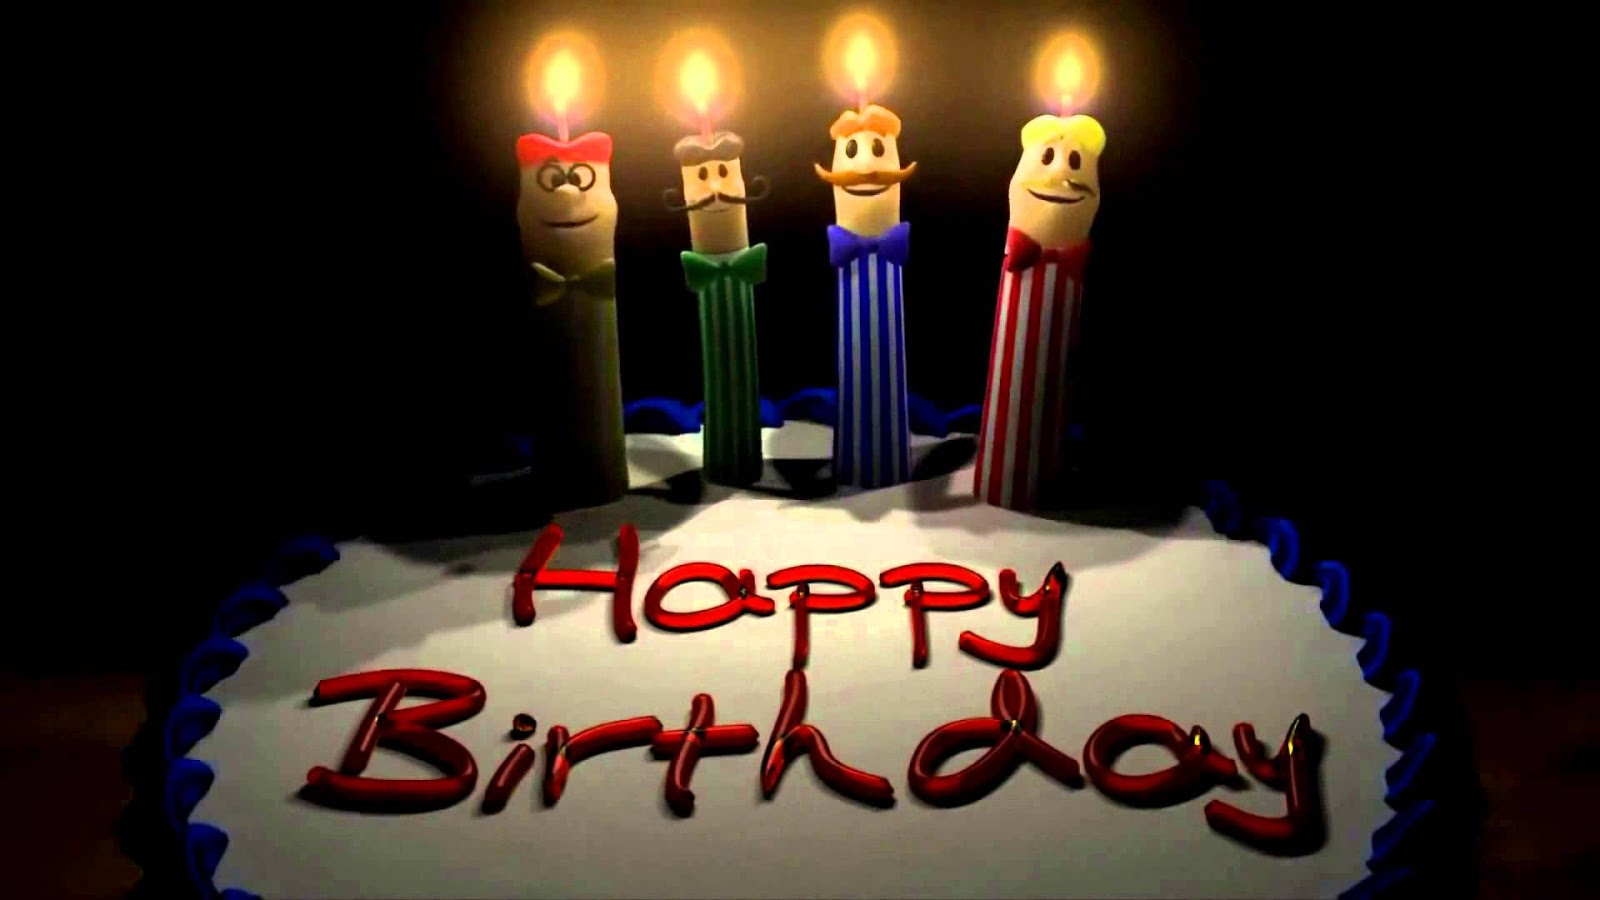 Happy Birthday Greetings Hd Images For Facebook Messenger